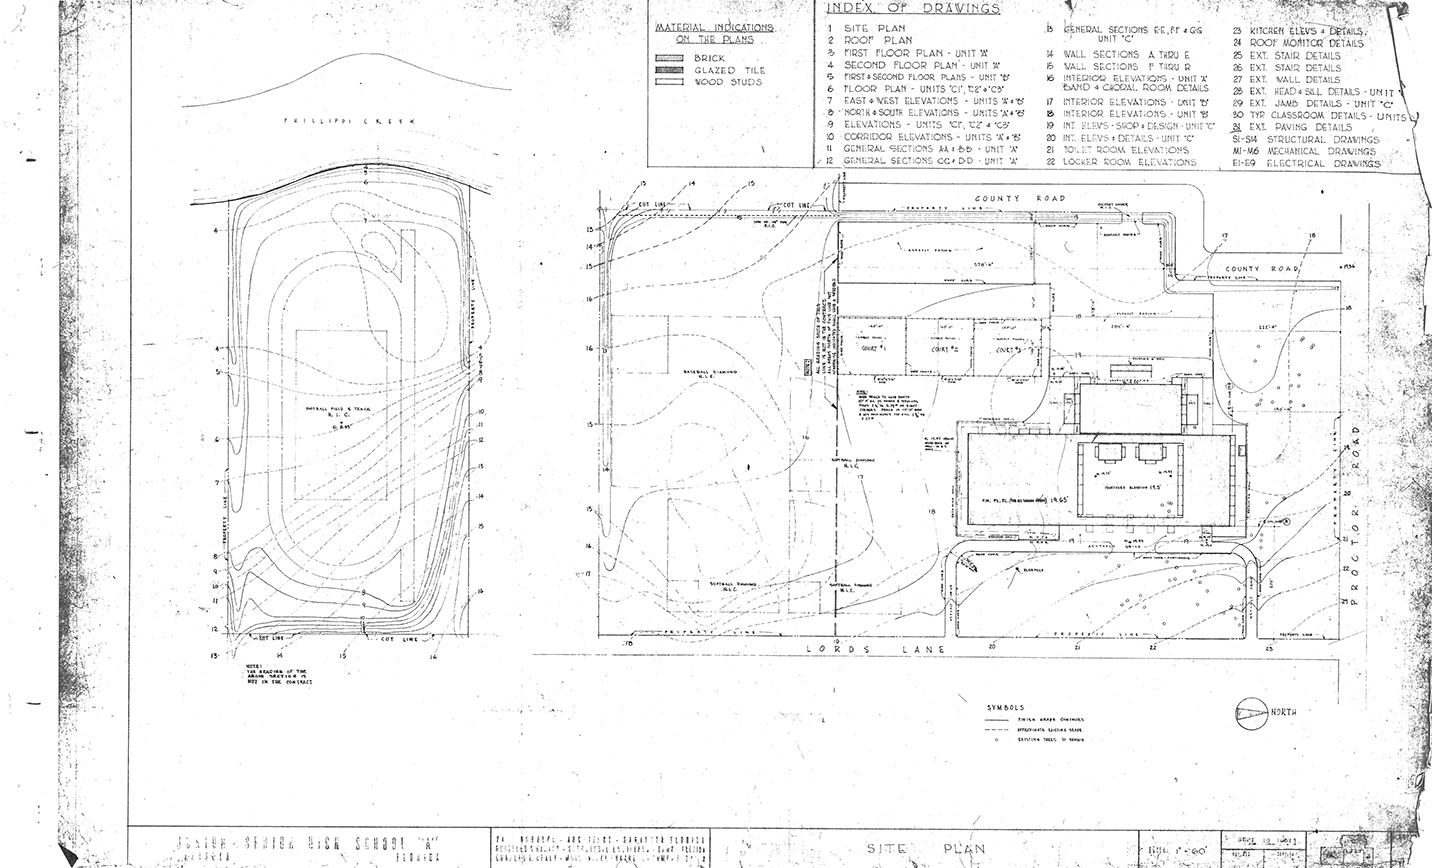 Riverview High School, Sarasota, Florida. Site Plan. Drawing dated September 18, 1957.